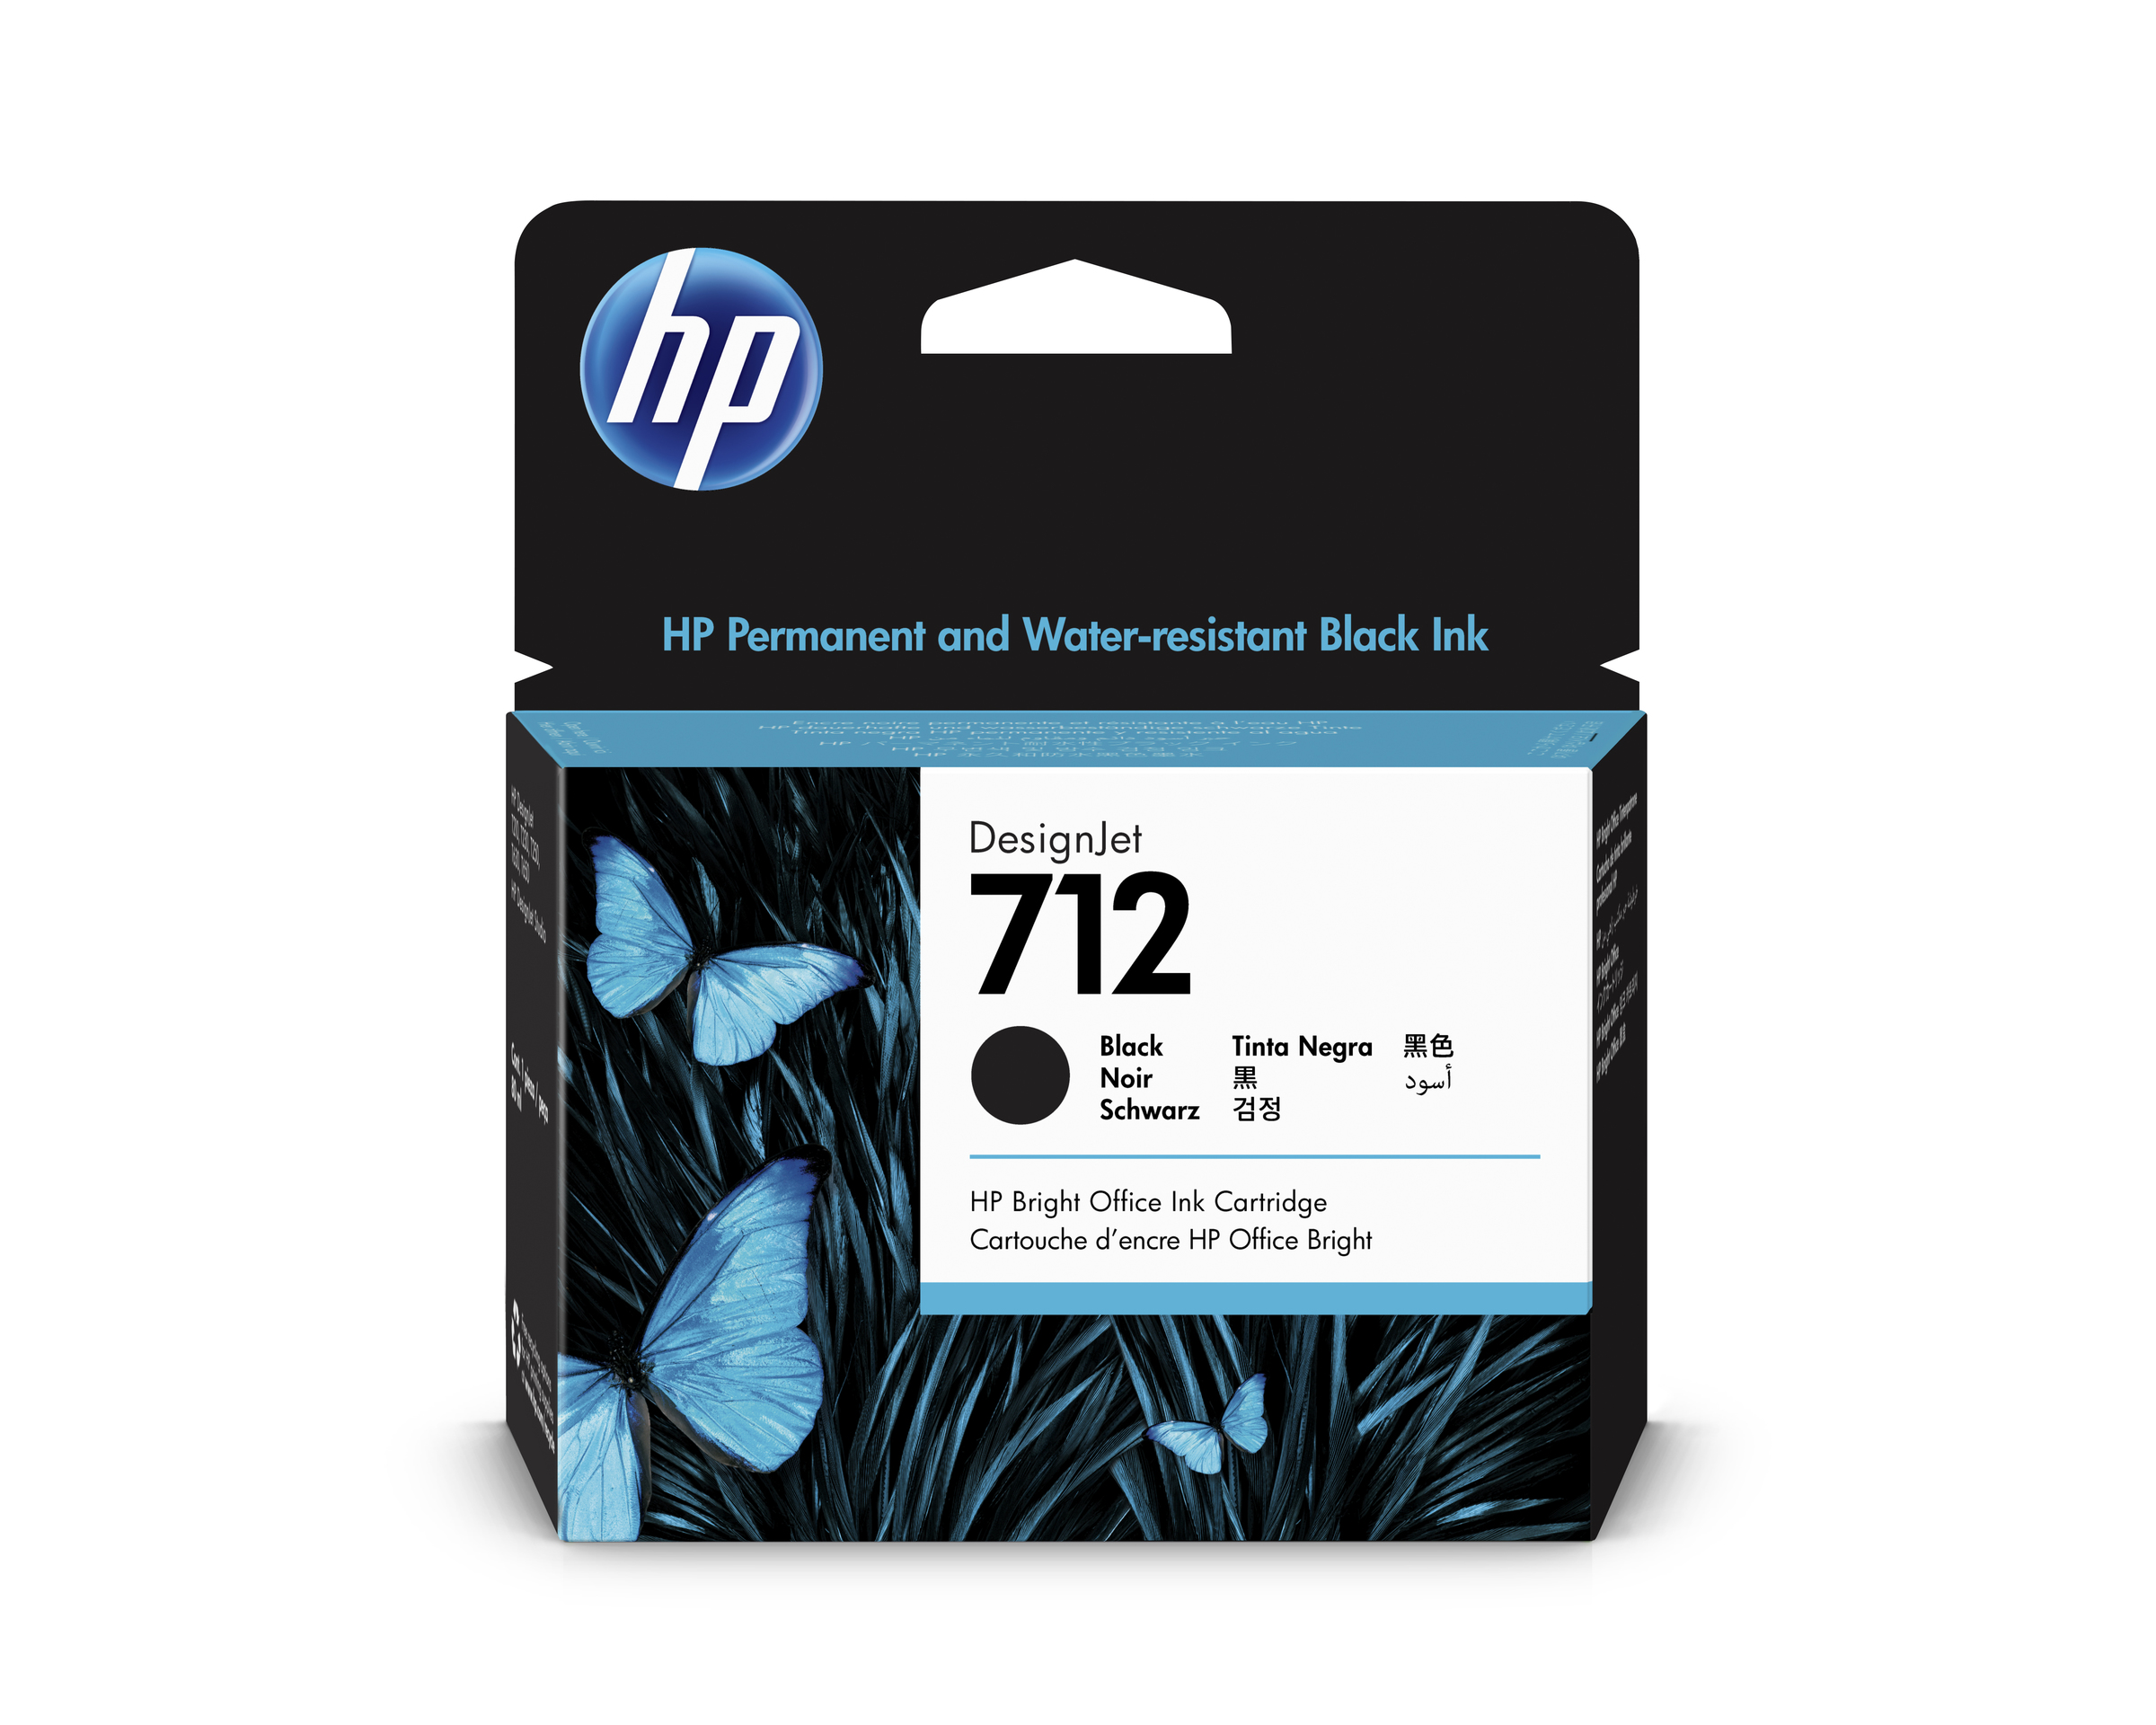 HP 712 80ml Black DesignJet Ink Cartridge WW.jpg